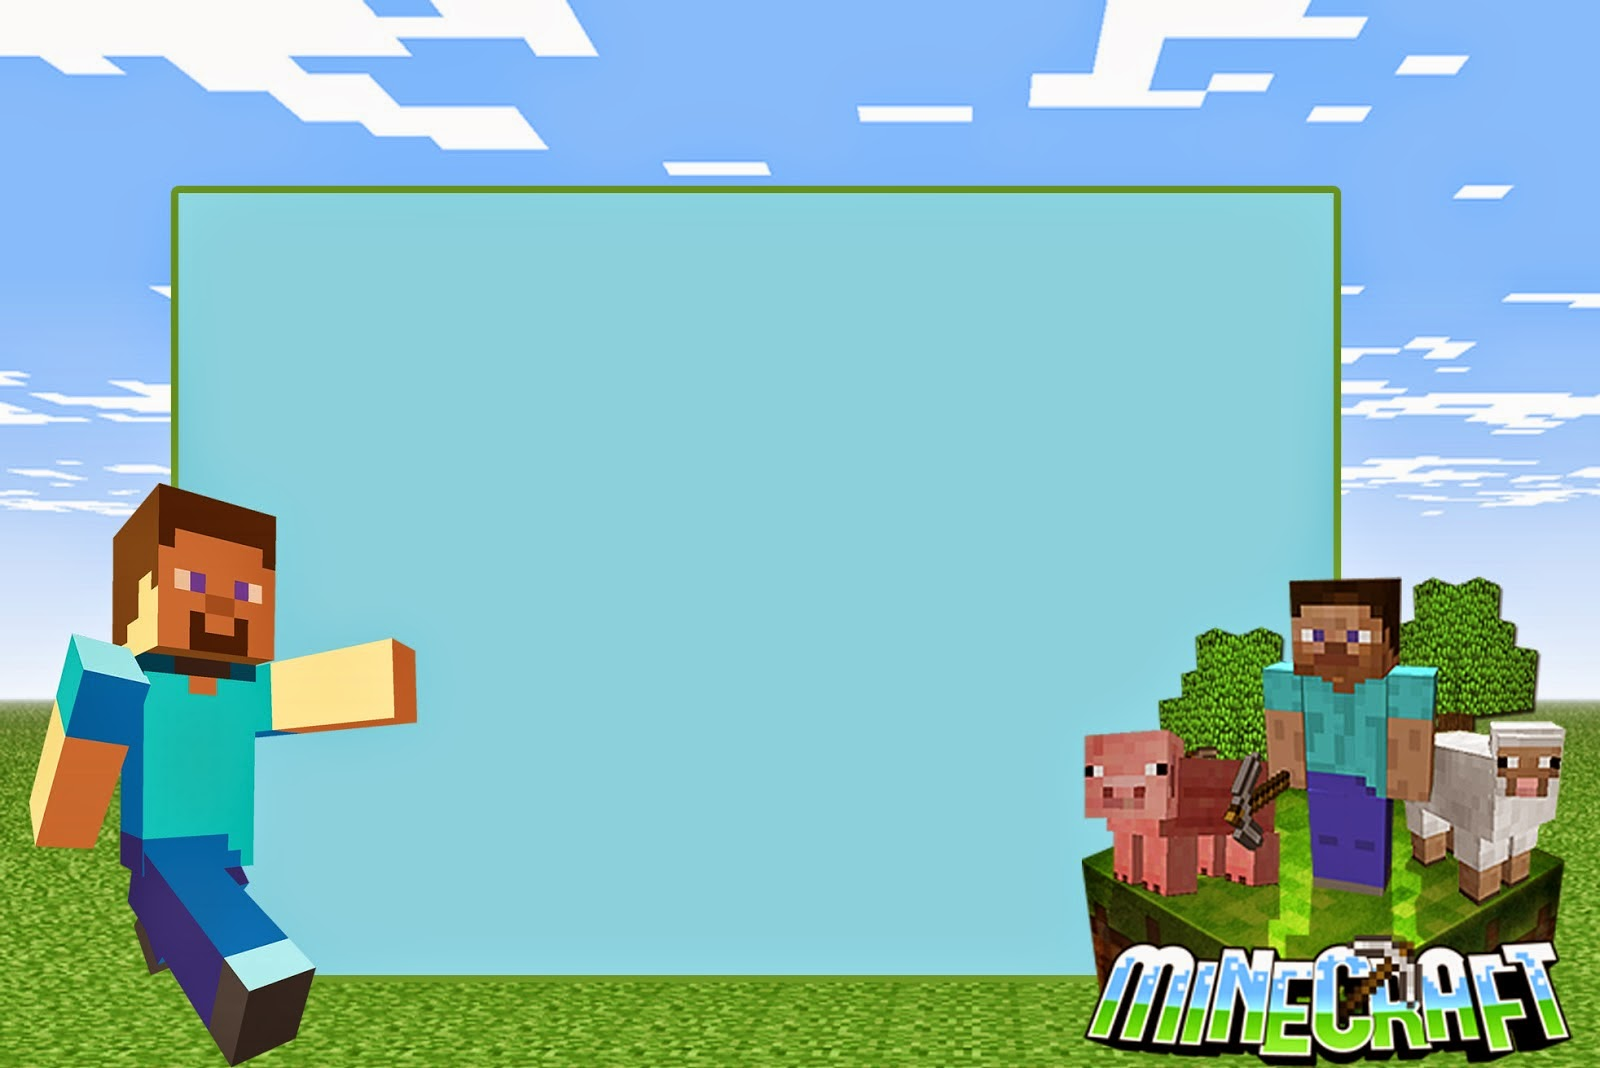 Minecraft invitaciones para imprimir gratis ideas y for Programas de decoracion online